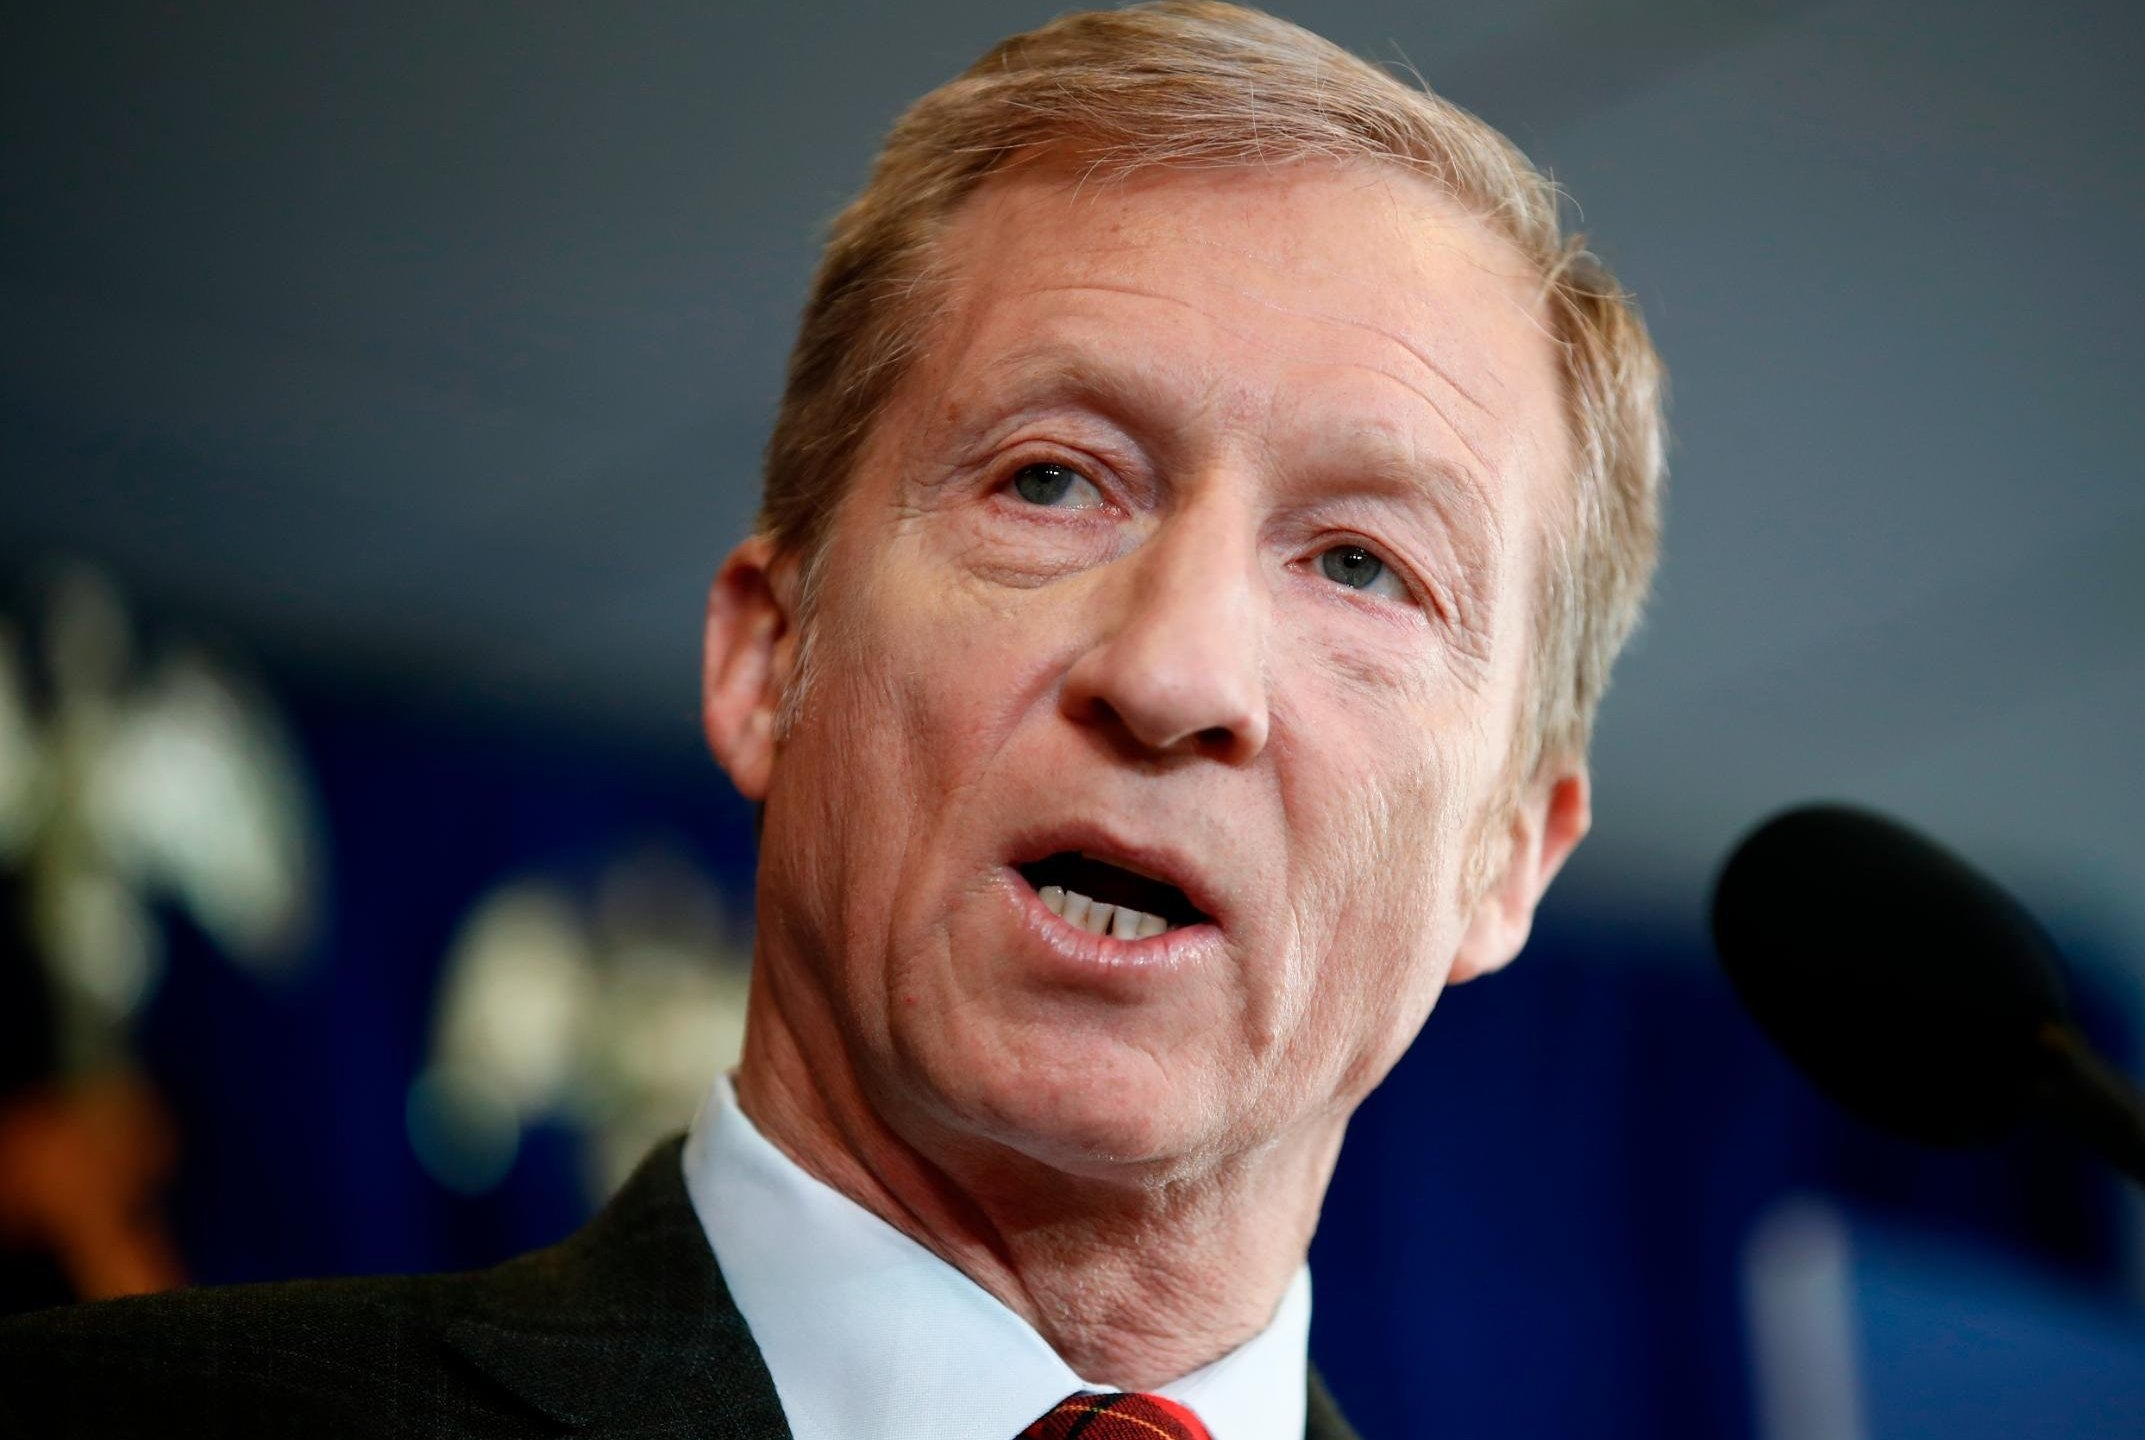 Billionaire environmental activist Tom Steyer speaks during a news conference in Washington, Monday, Jan. 8, 2018. Steyer announced Monday he will spend $30 million to get young voters to the polls in this year's midterm elections.